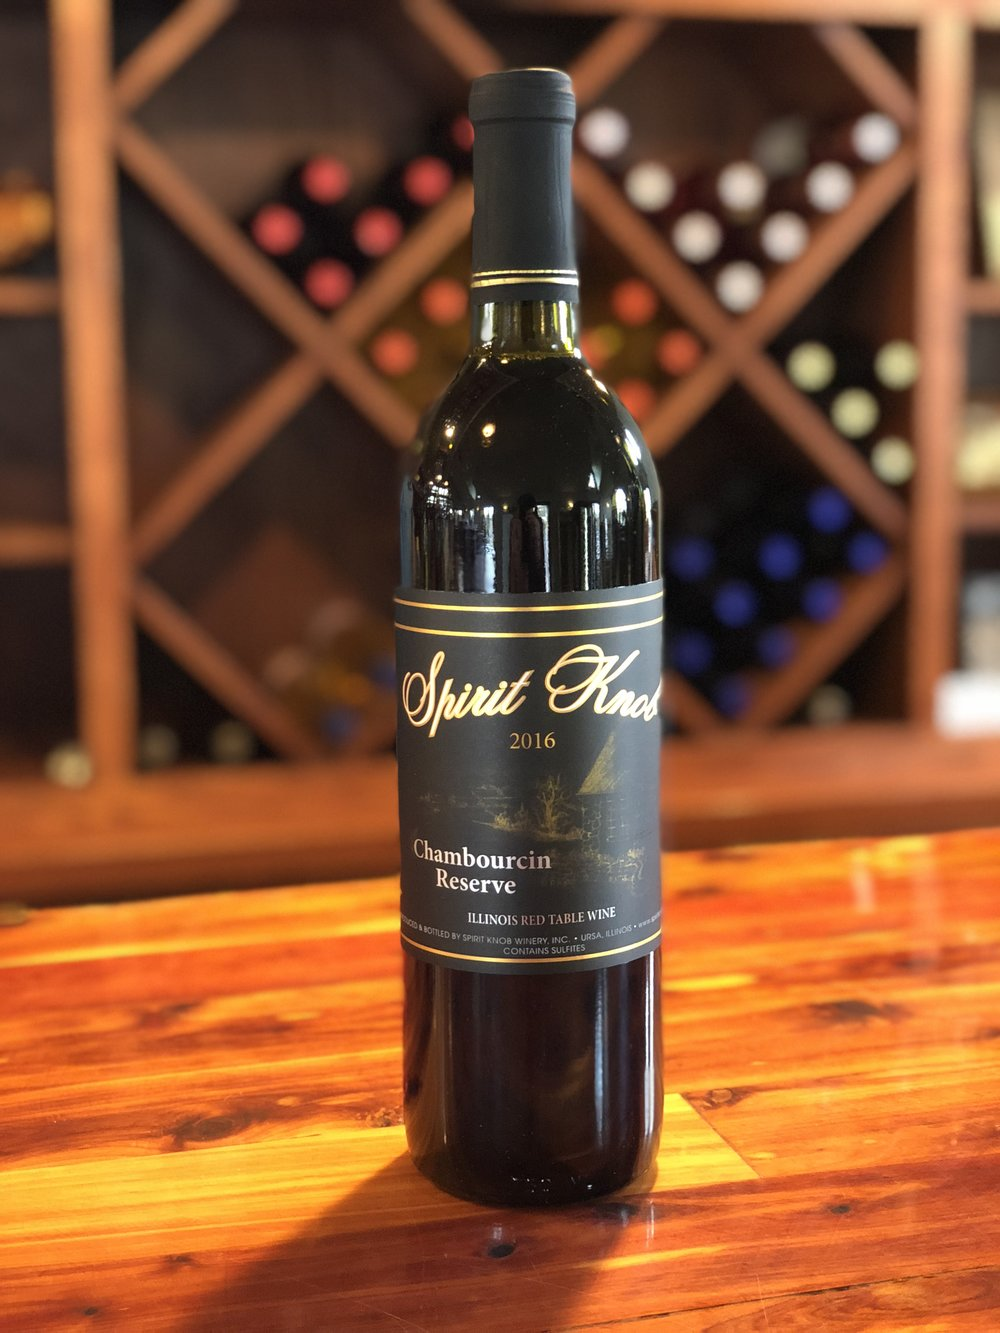 Chambourcin Reserve - A full-bodied oaky dry with flavors of cherry and raspberry. This particular wine ages very well. Click here to buy now!